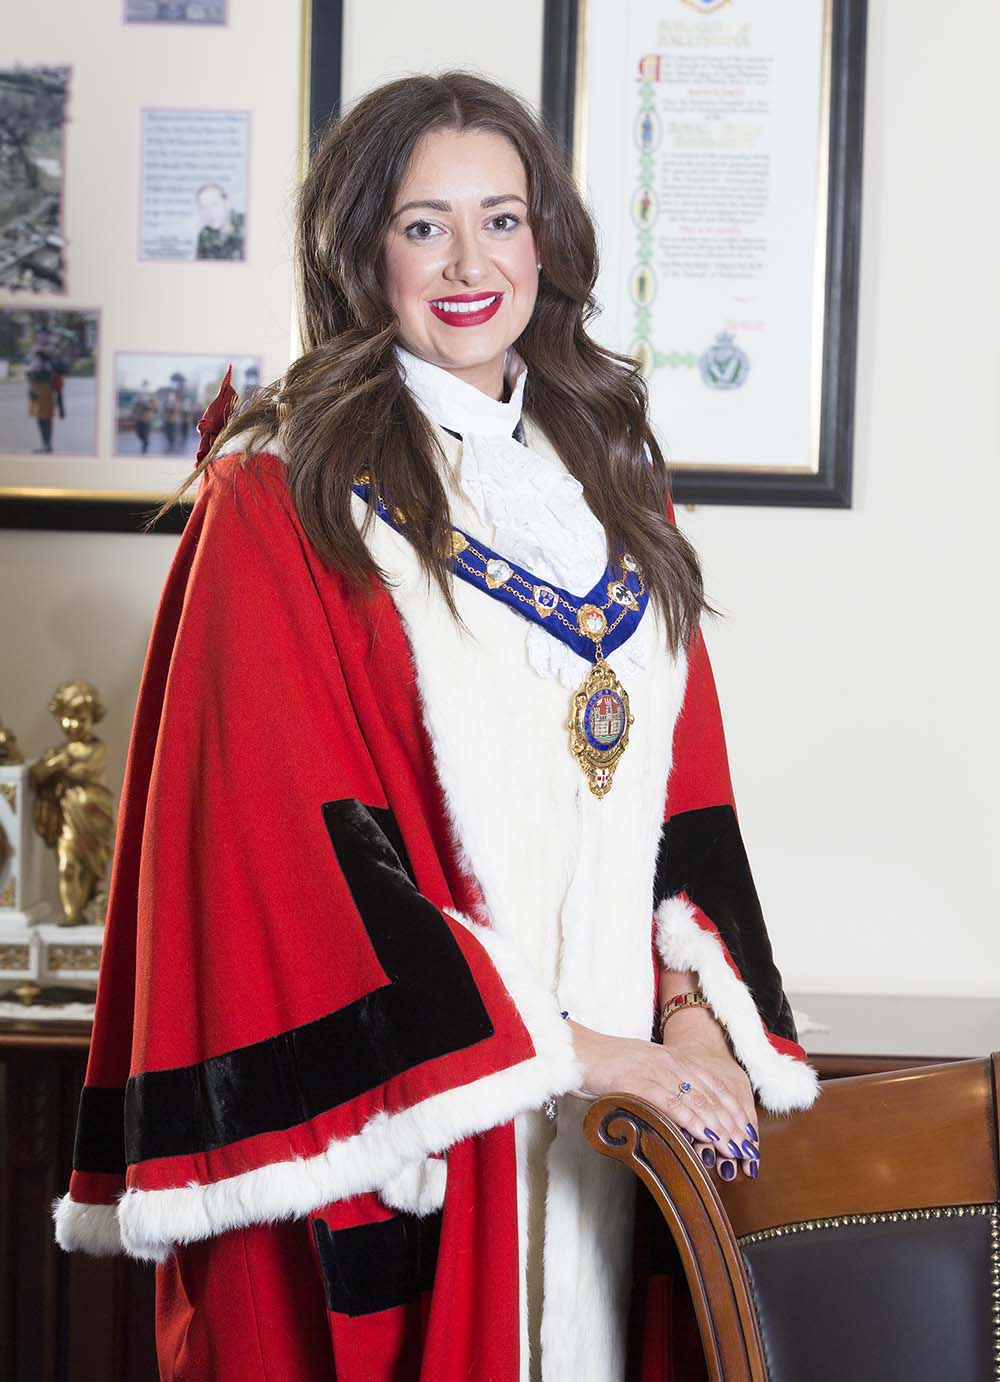 Mayor Cllr Lindsay Millar